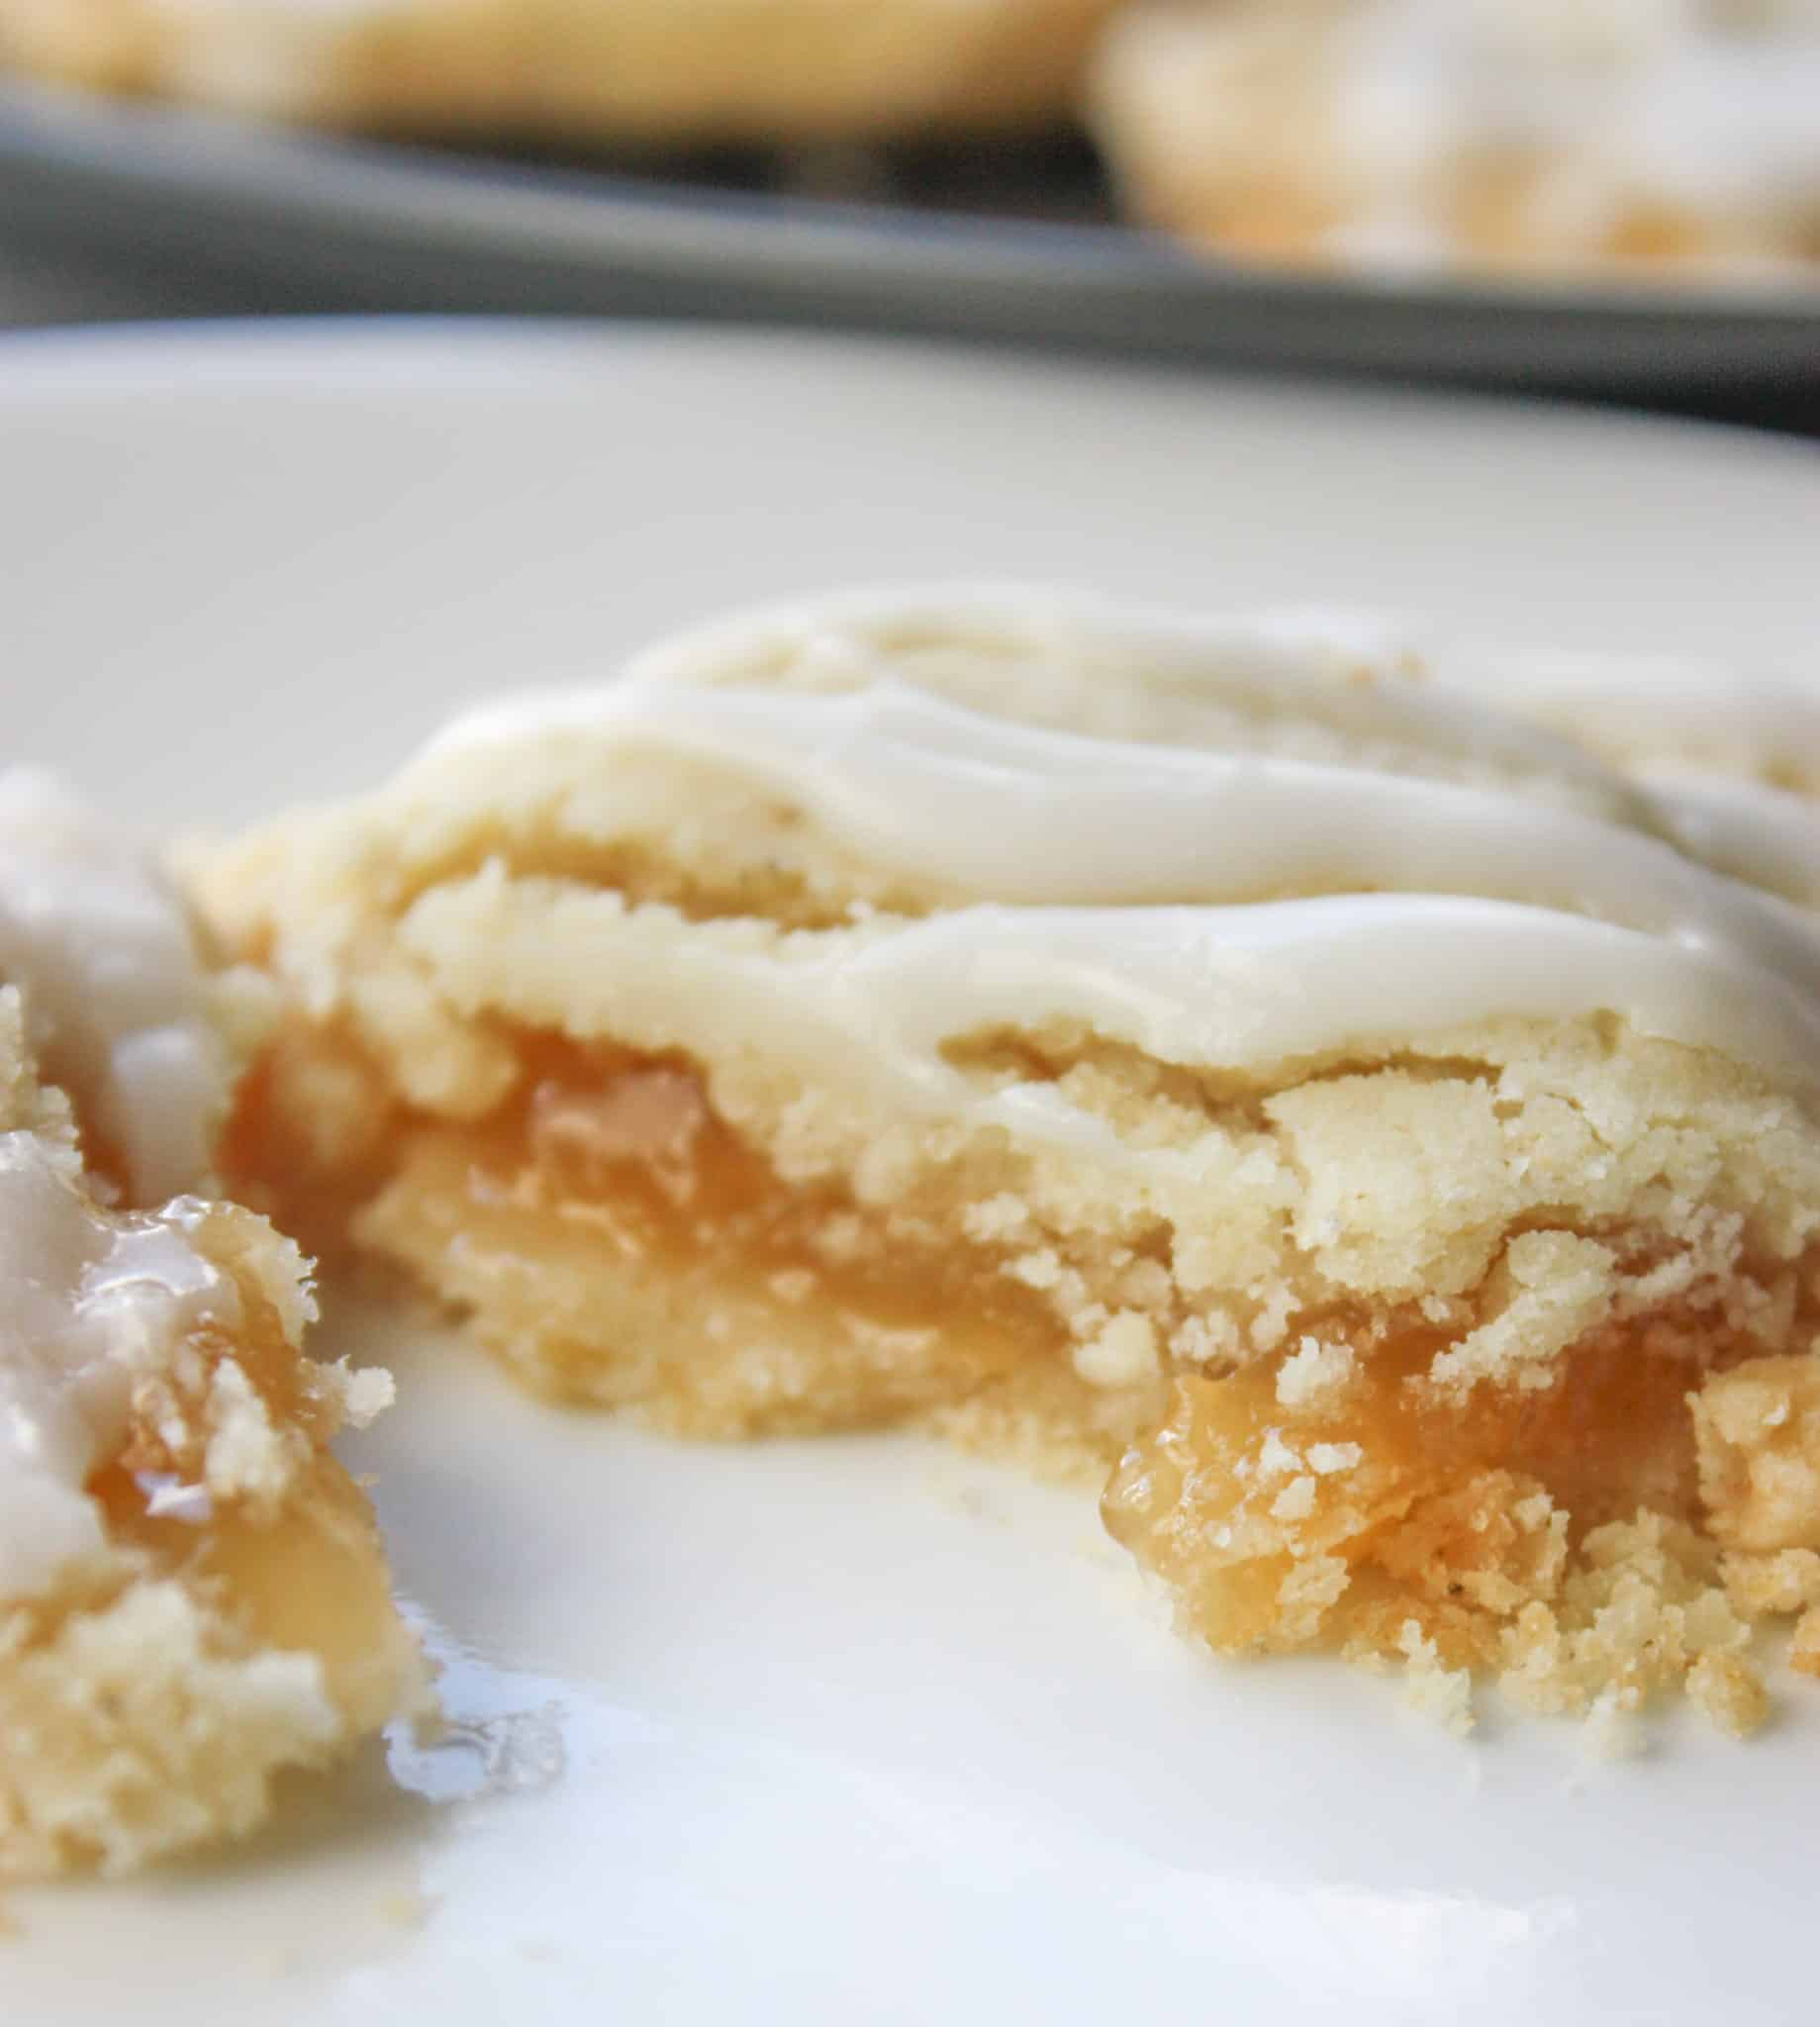 Apple Pie Patties are a great way to use canned apple pie filling. This gluten free pastry would be a delicious accompaniment to your afternoon tea!